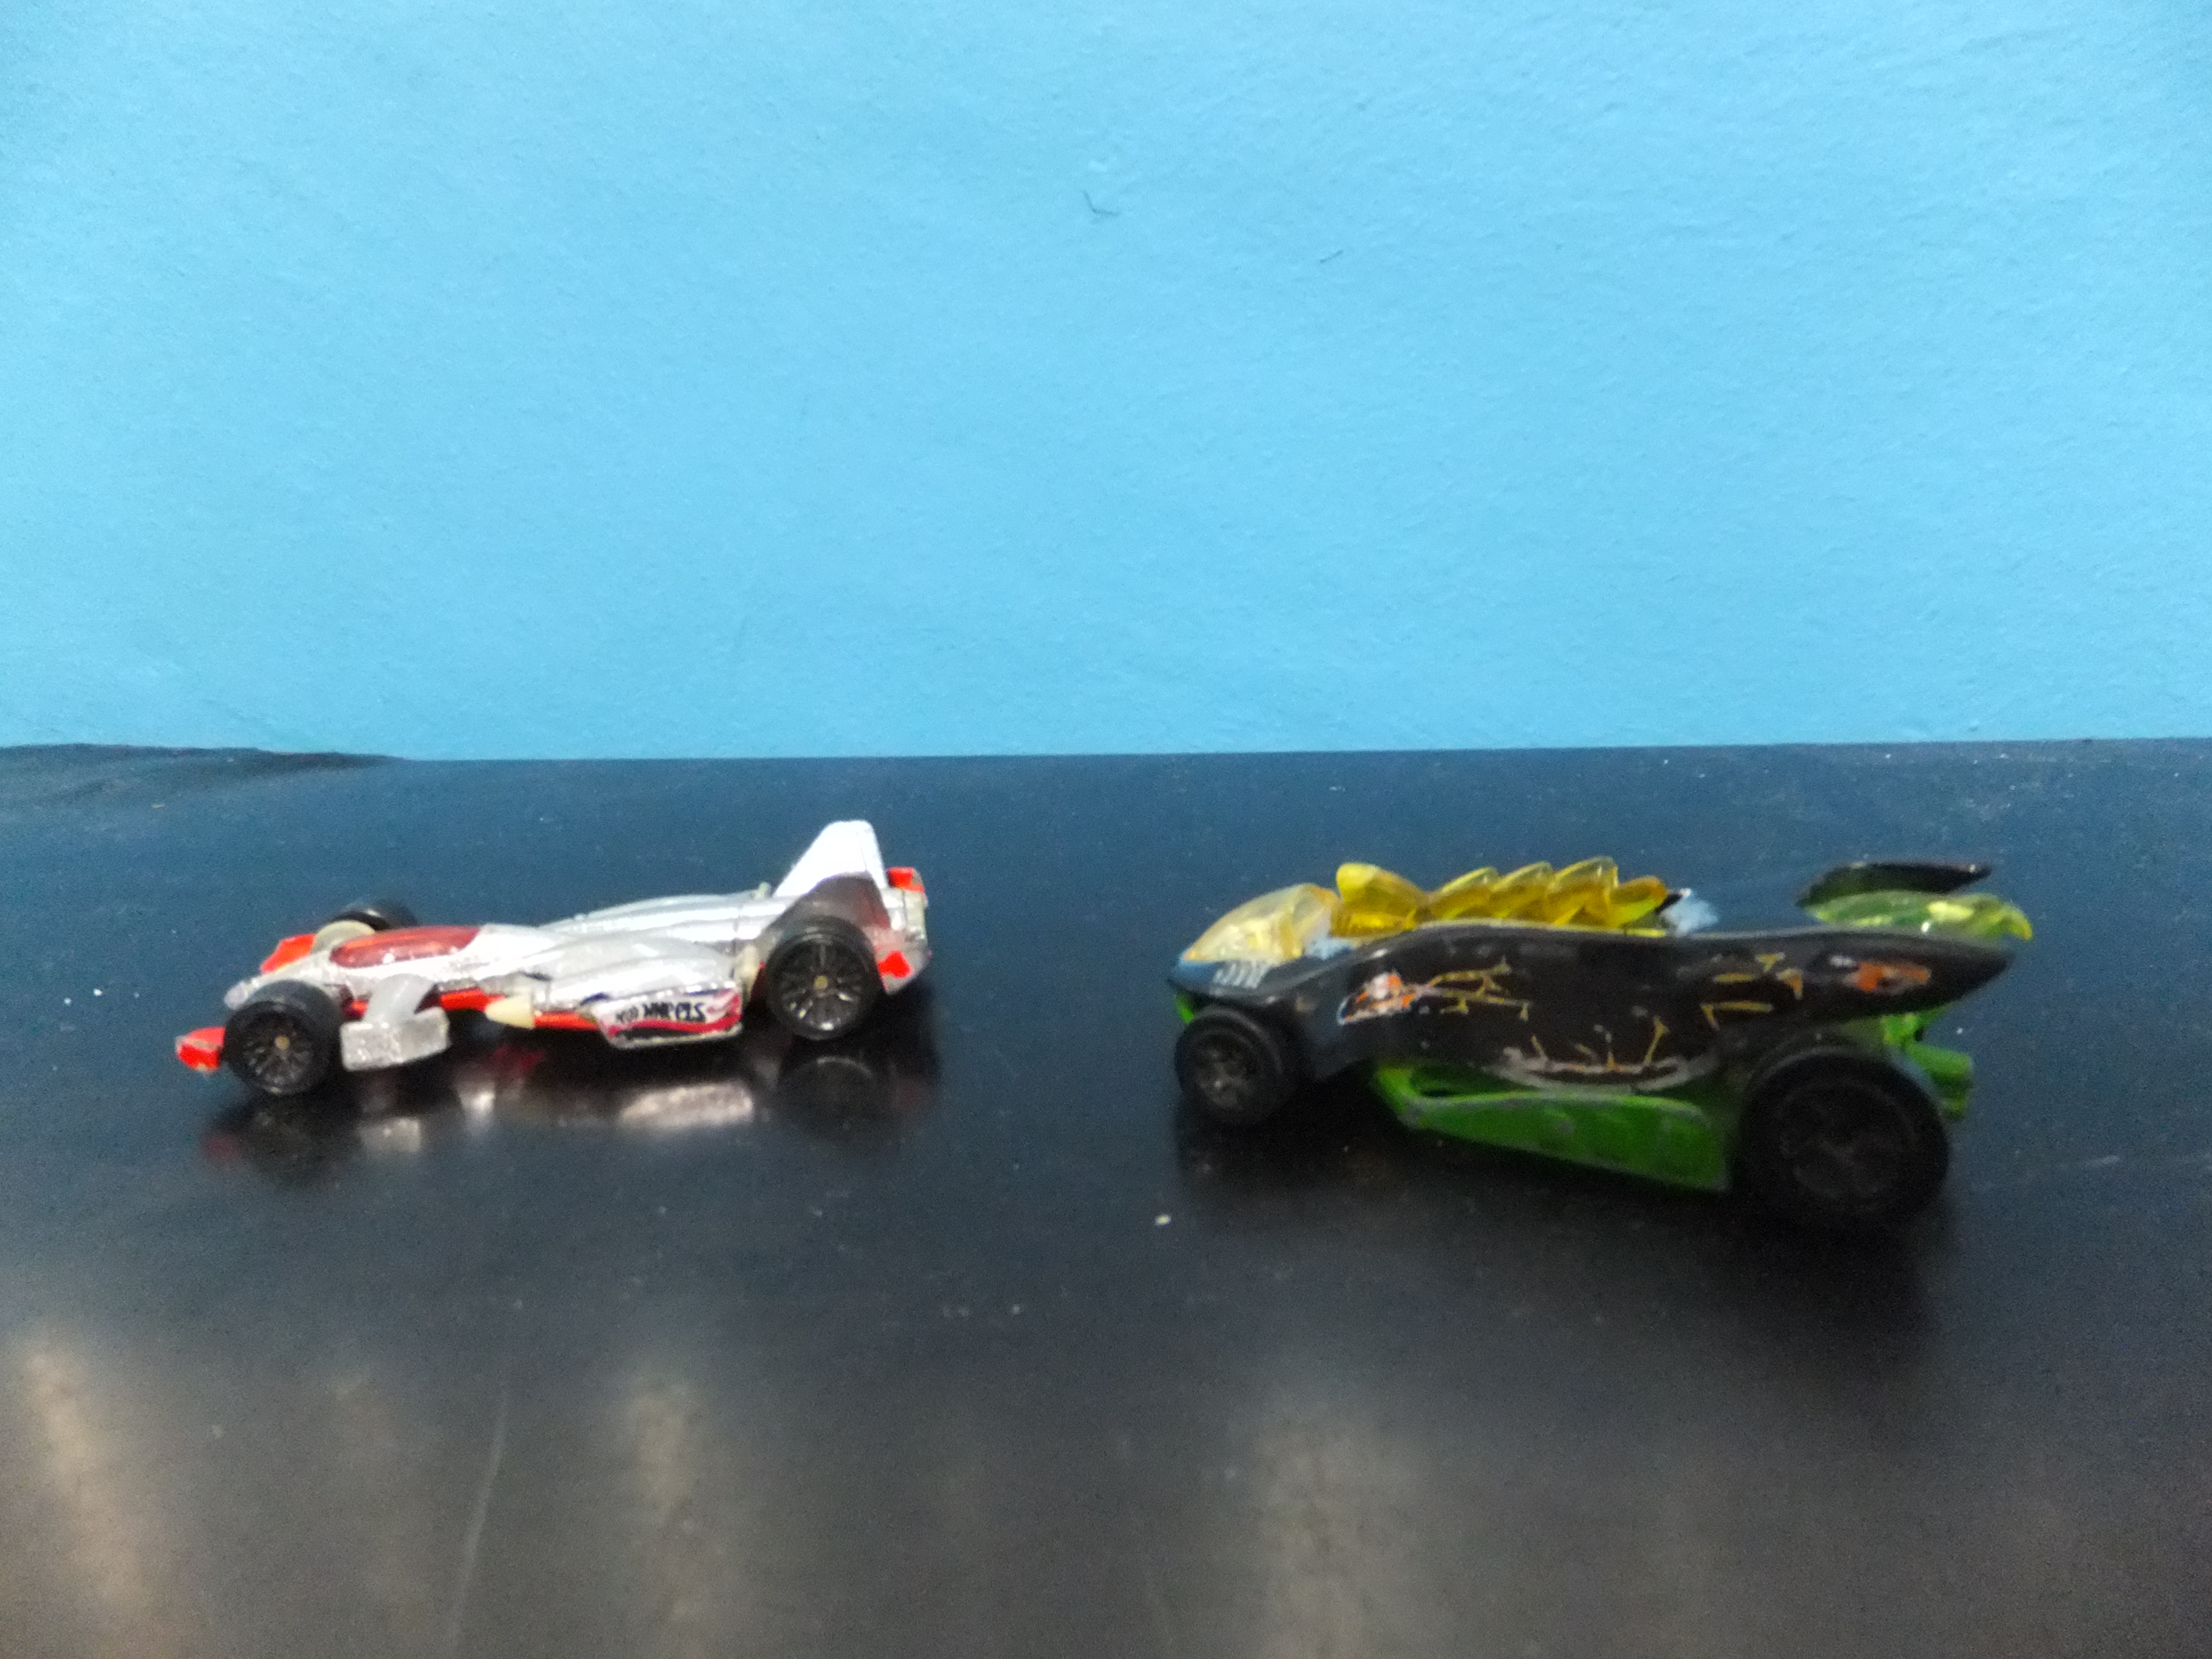 Hot Wheels Racing Cars-Assorted Picture